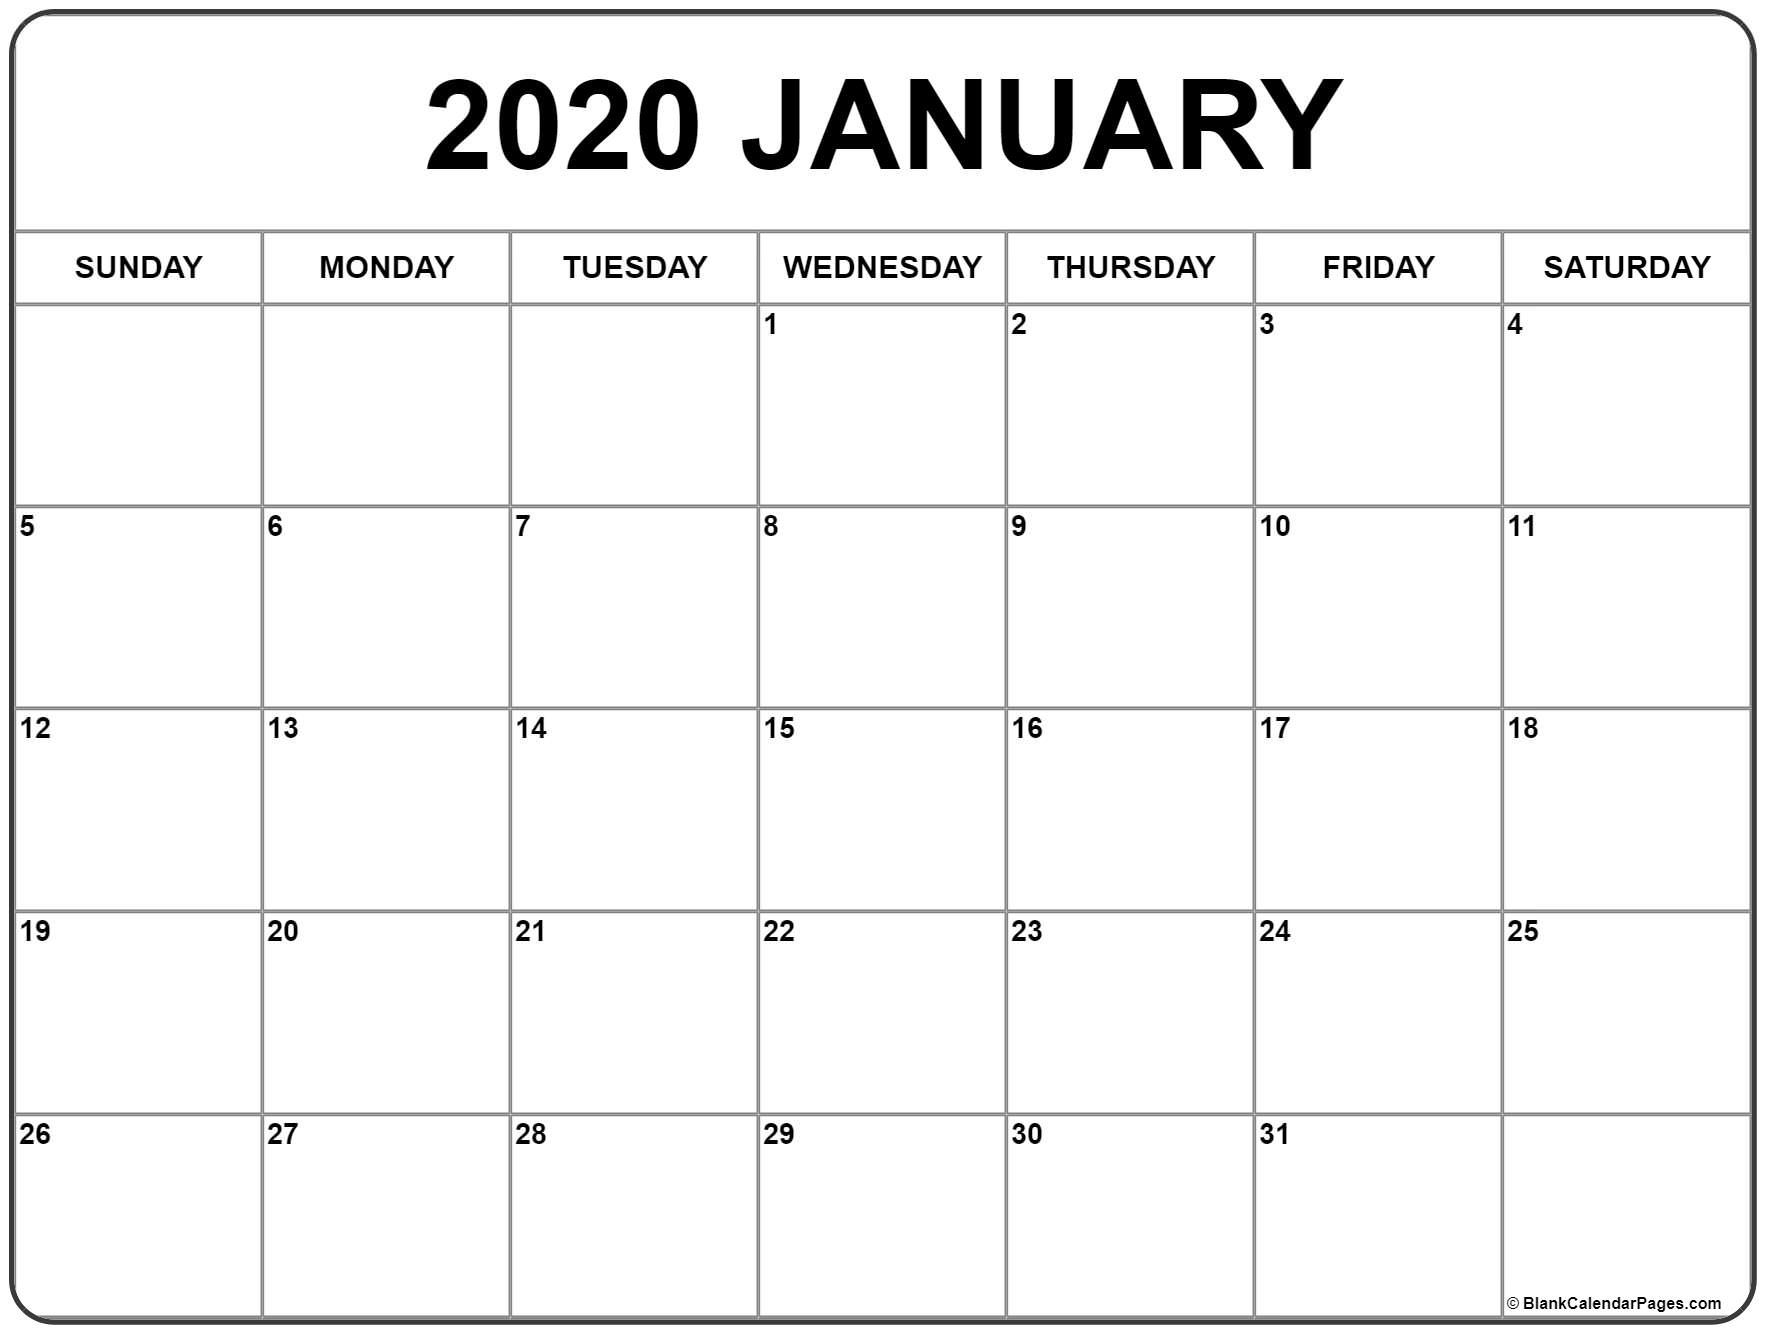 Catch Free 2020 Calendar Printable January Through December